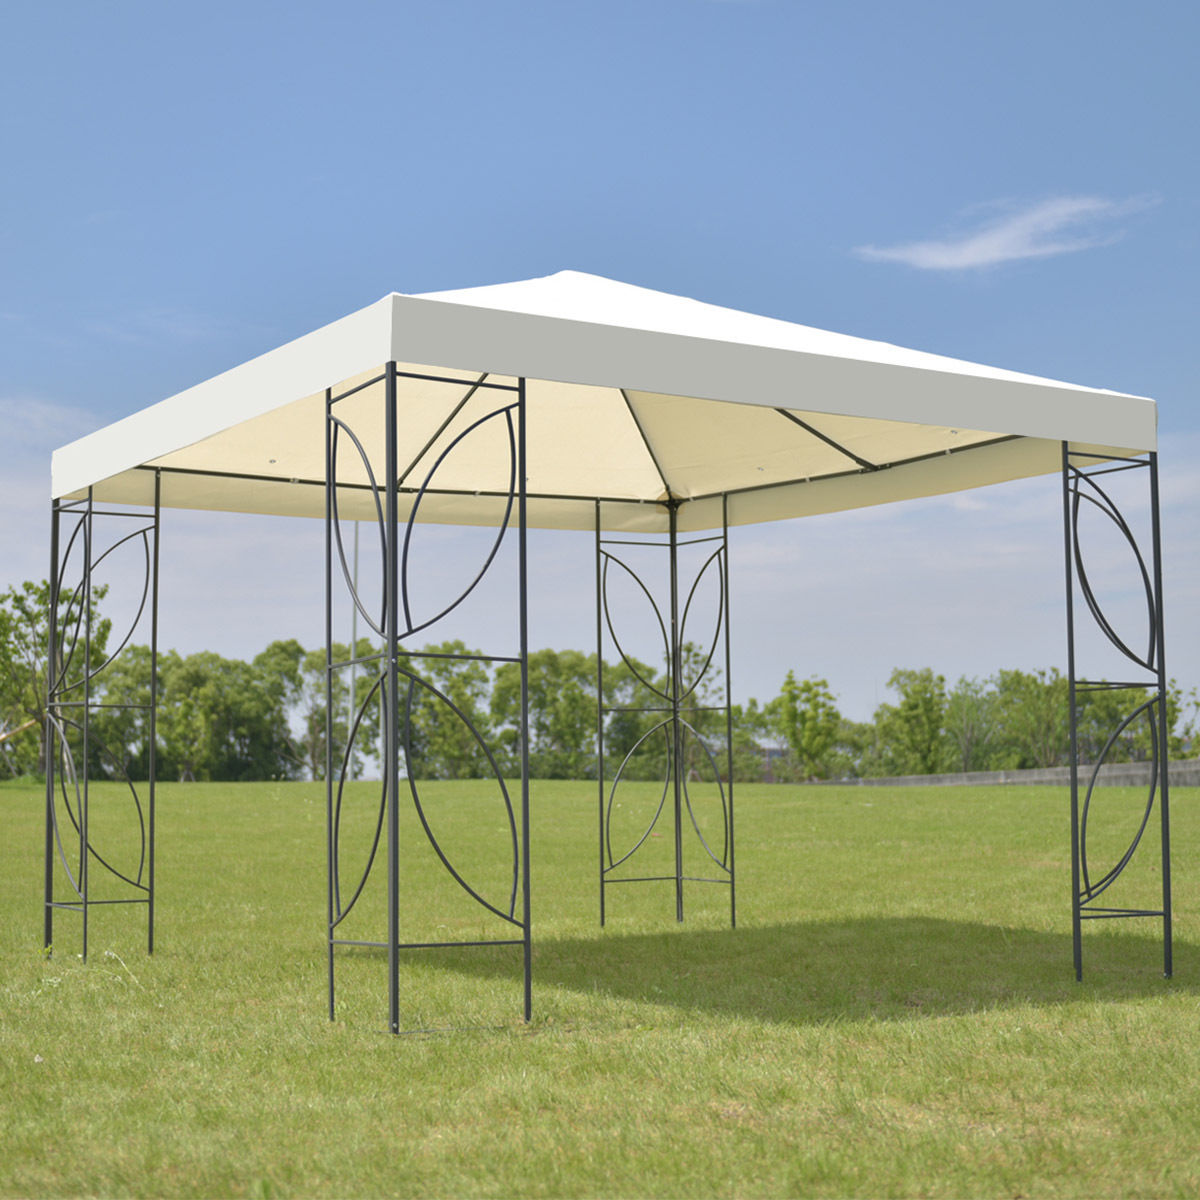 Goplus Patio 10 'X10 'Square Gazebo Canopy Tent Waterproof Steel Frame Shelter Awning with Beige Cover OP3115BE esspero canopy